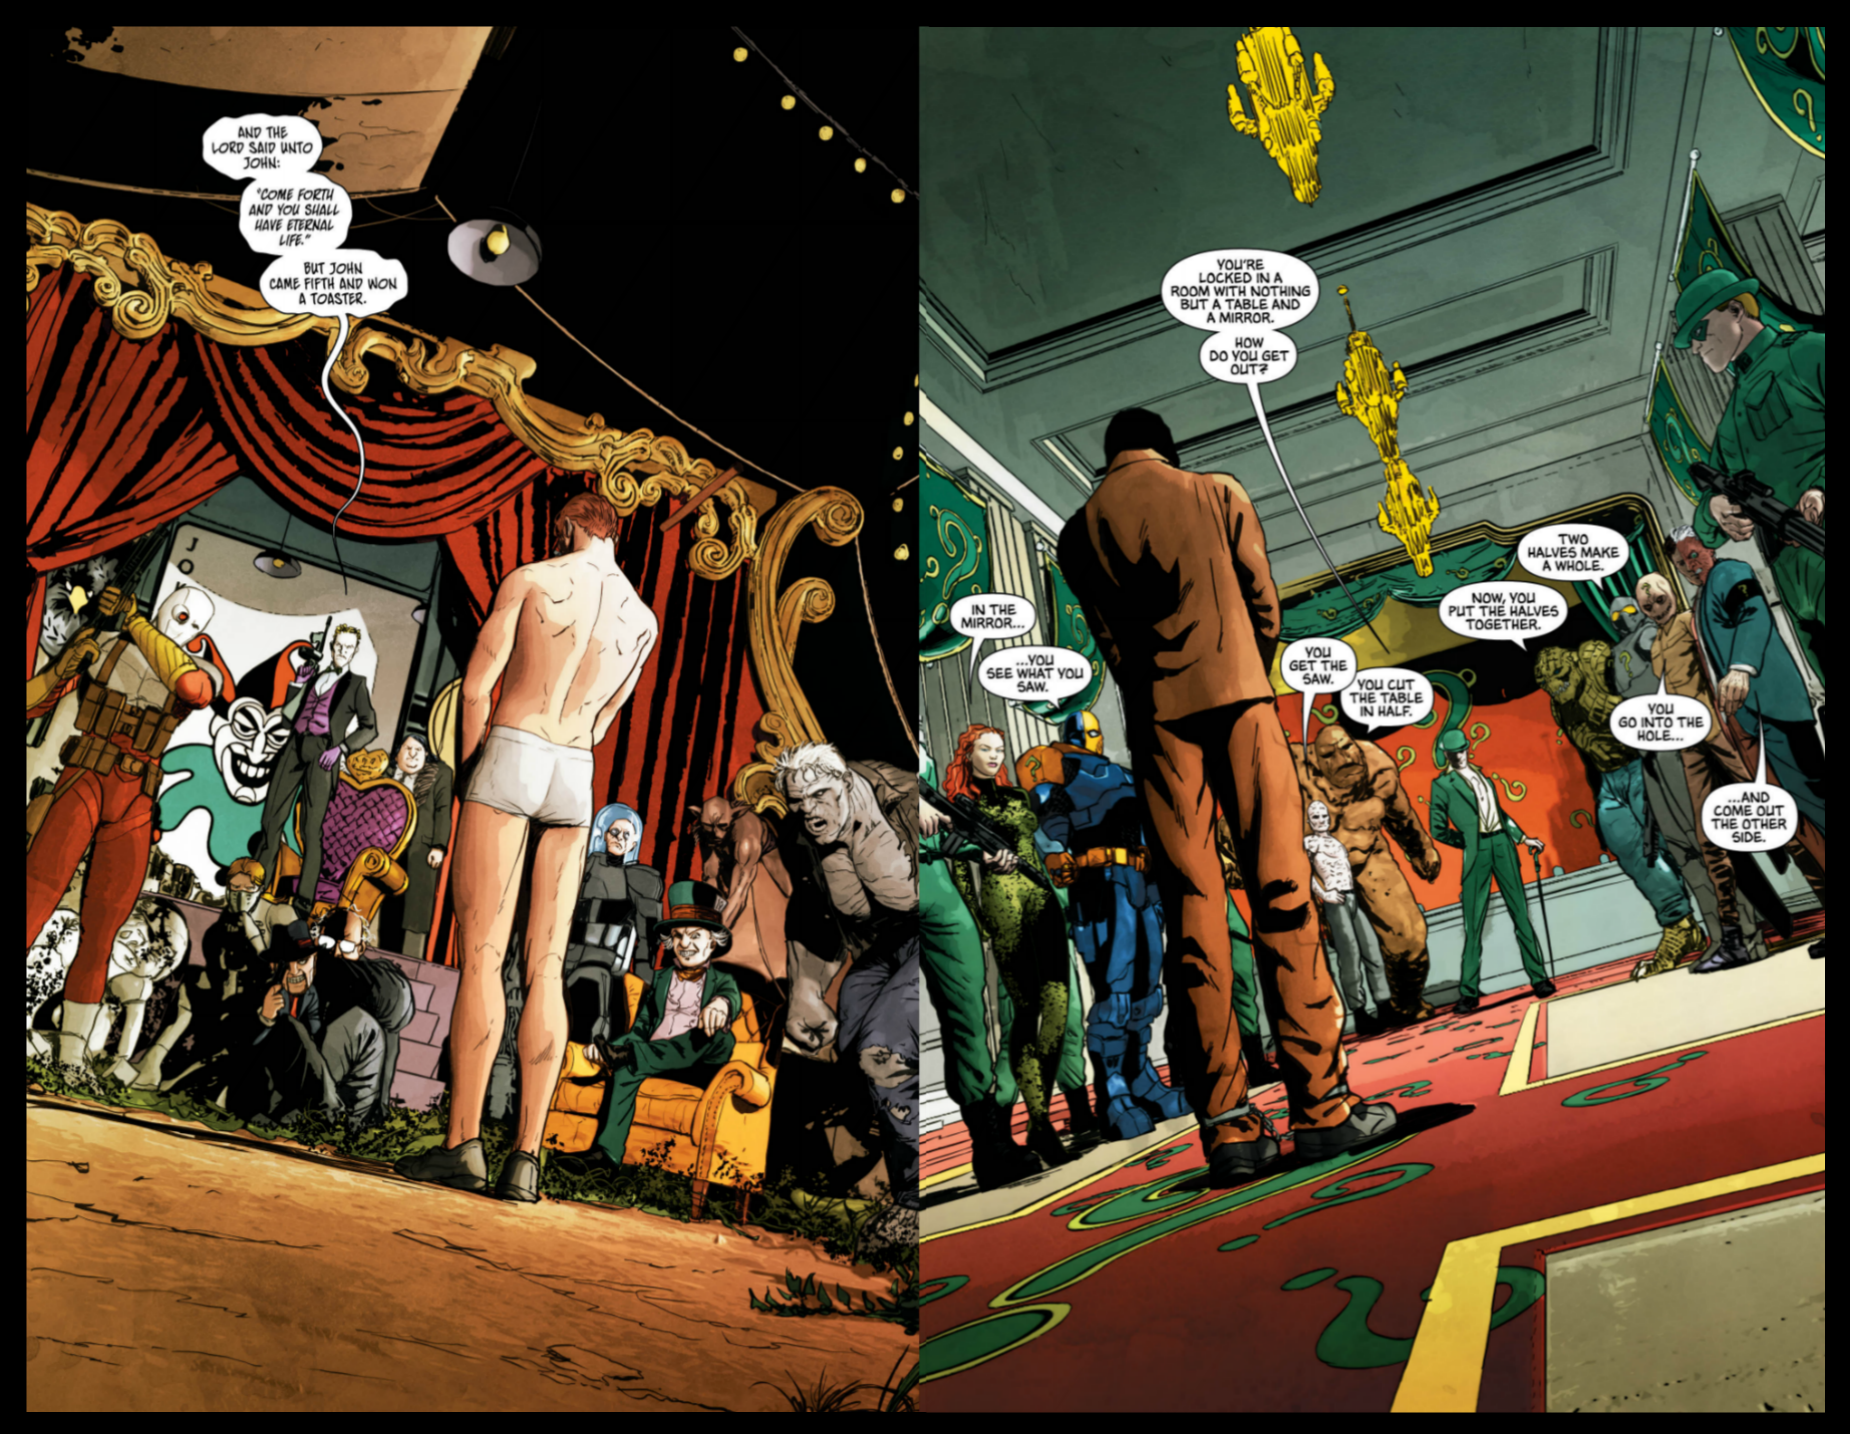 Interior pages from 'Batman' #28. Art by Mikel Janín and June Chung/DC Comics